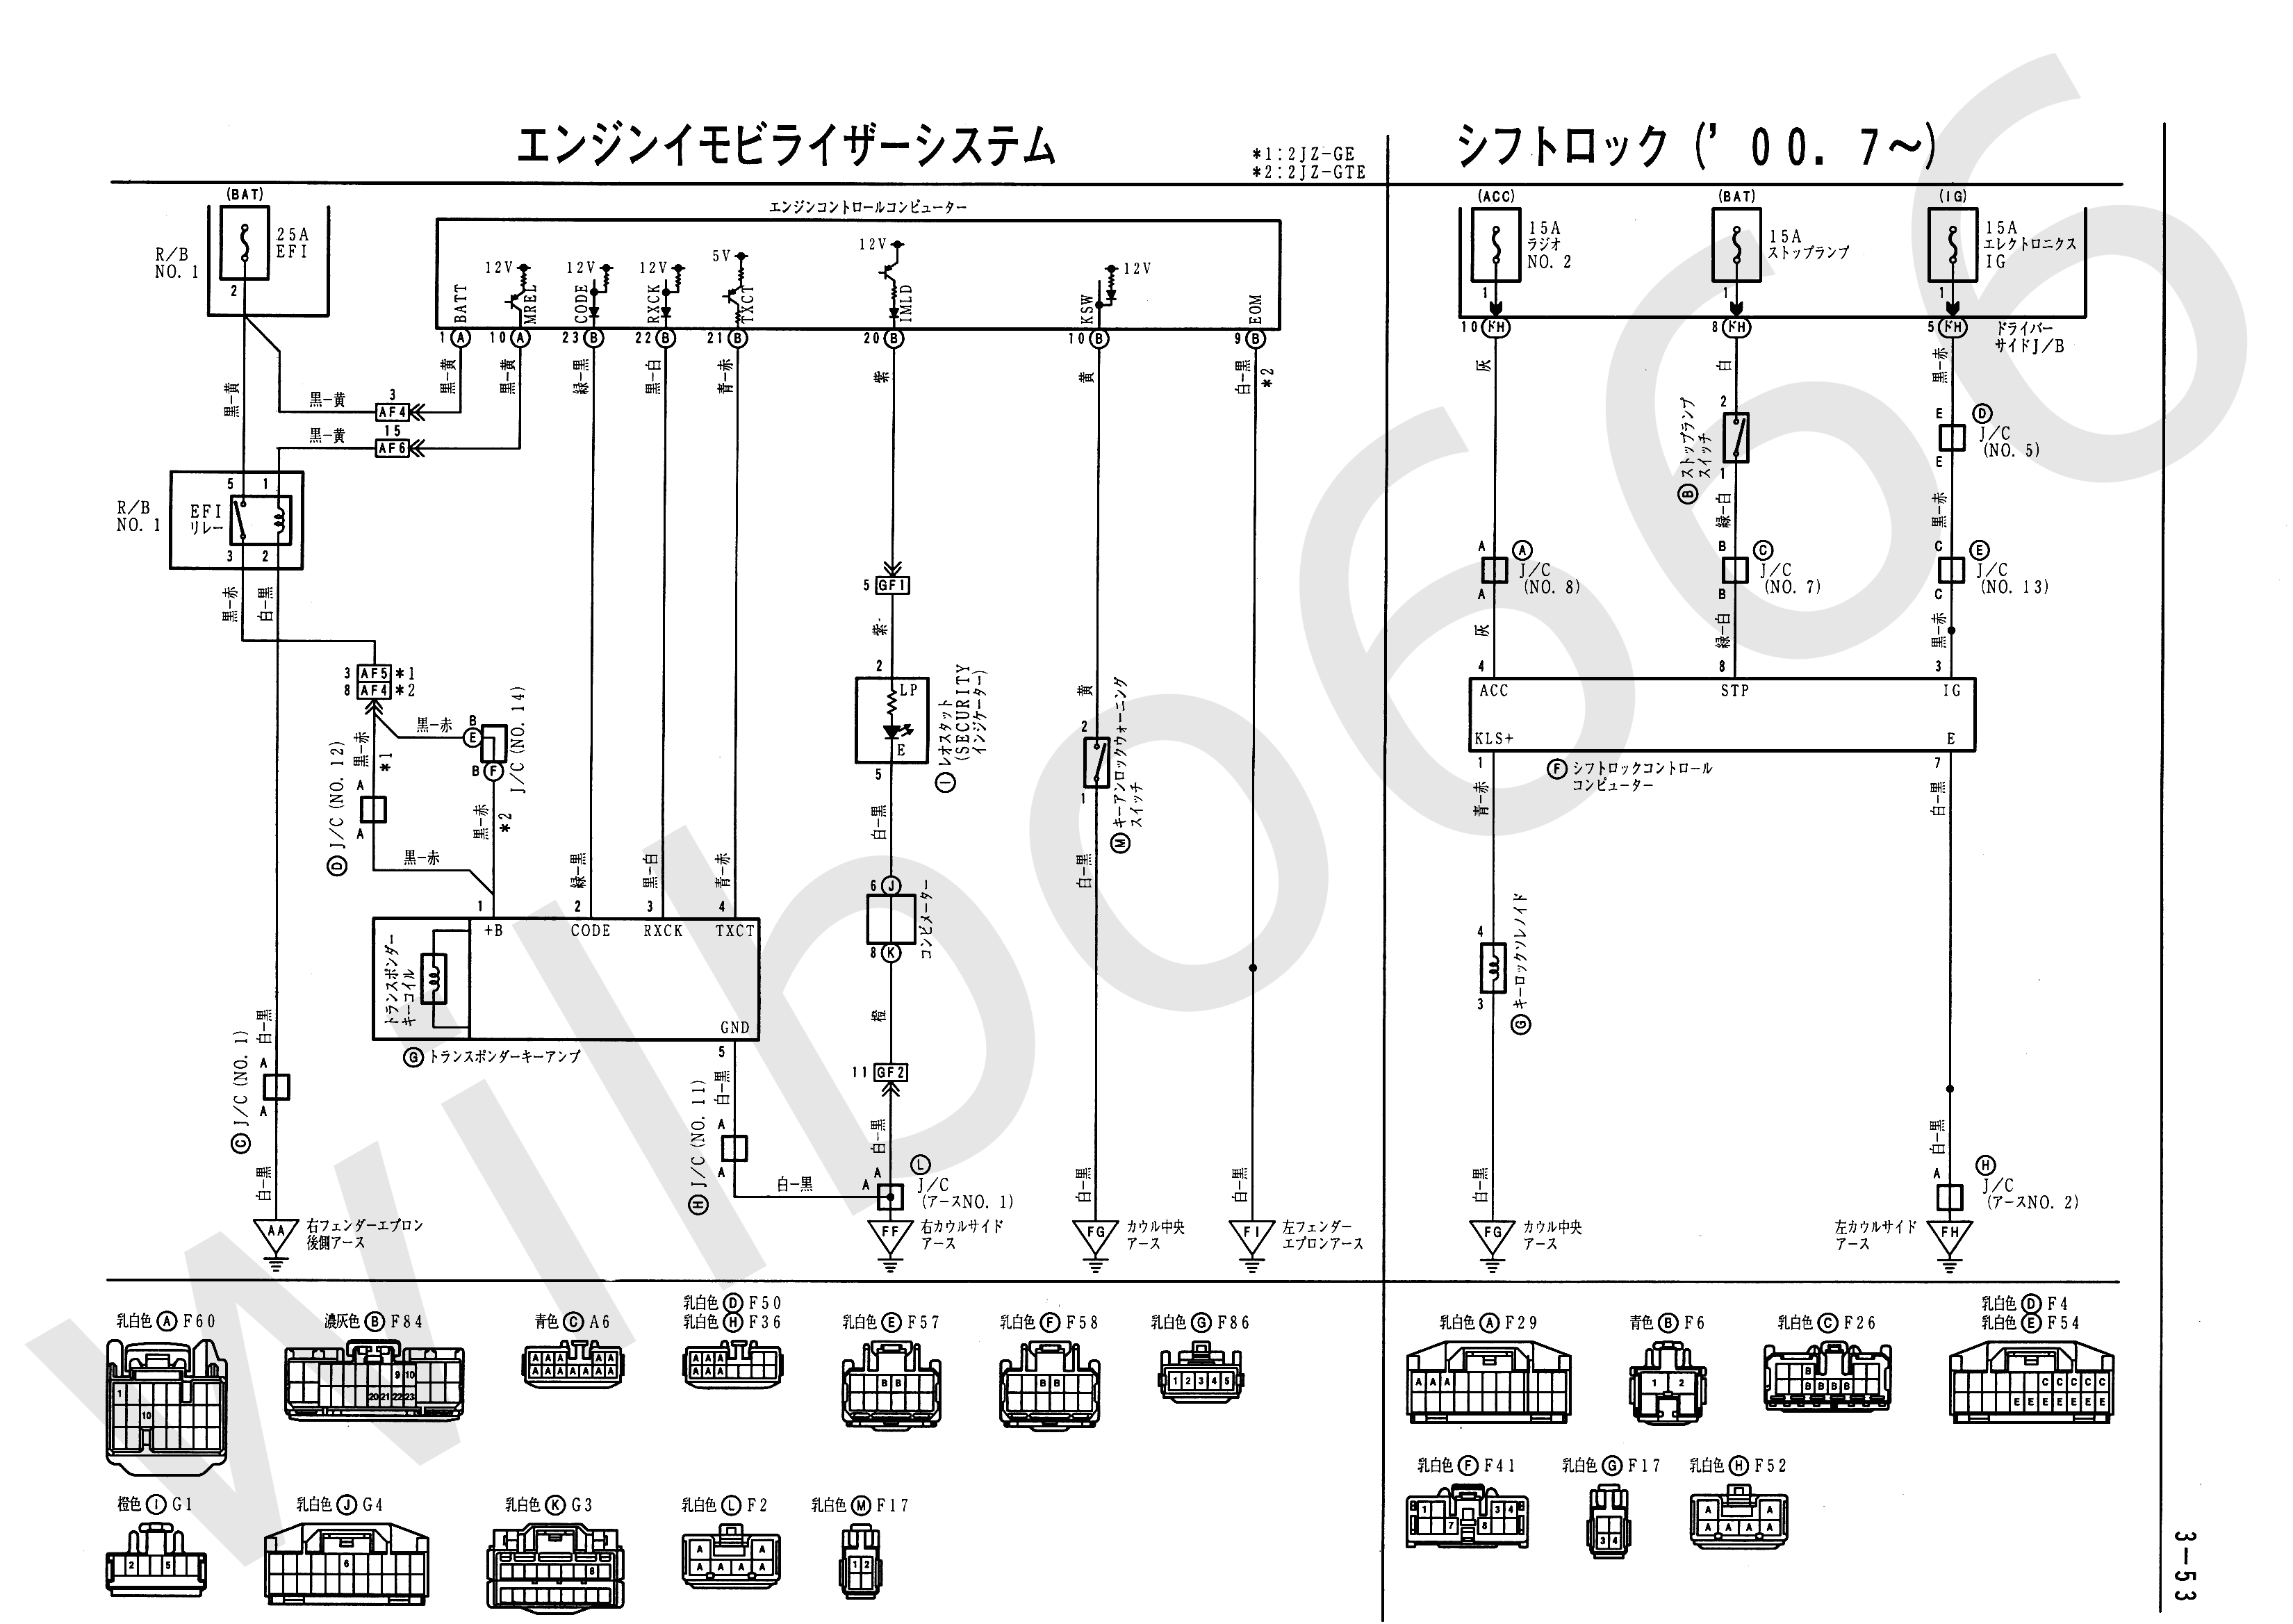 Wilbo666 2jz Gte Vvti Jzs161 Aristo Engine Wiring Led Lights No Free Download Diagrams Pictures